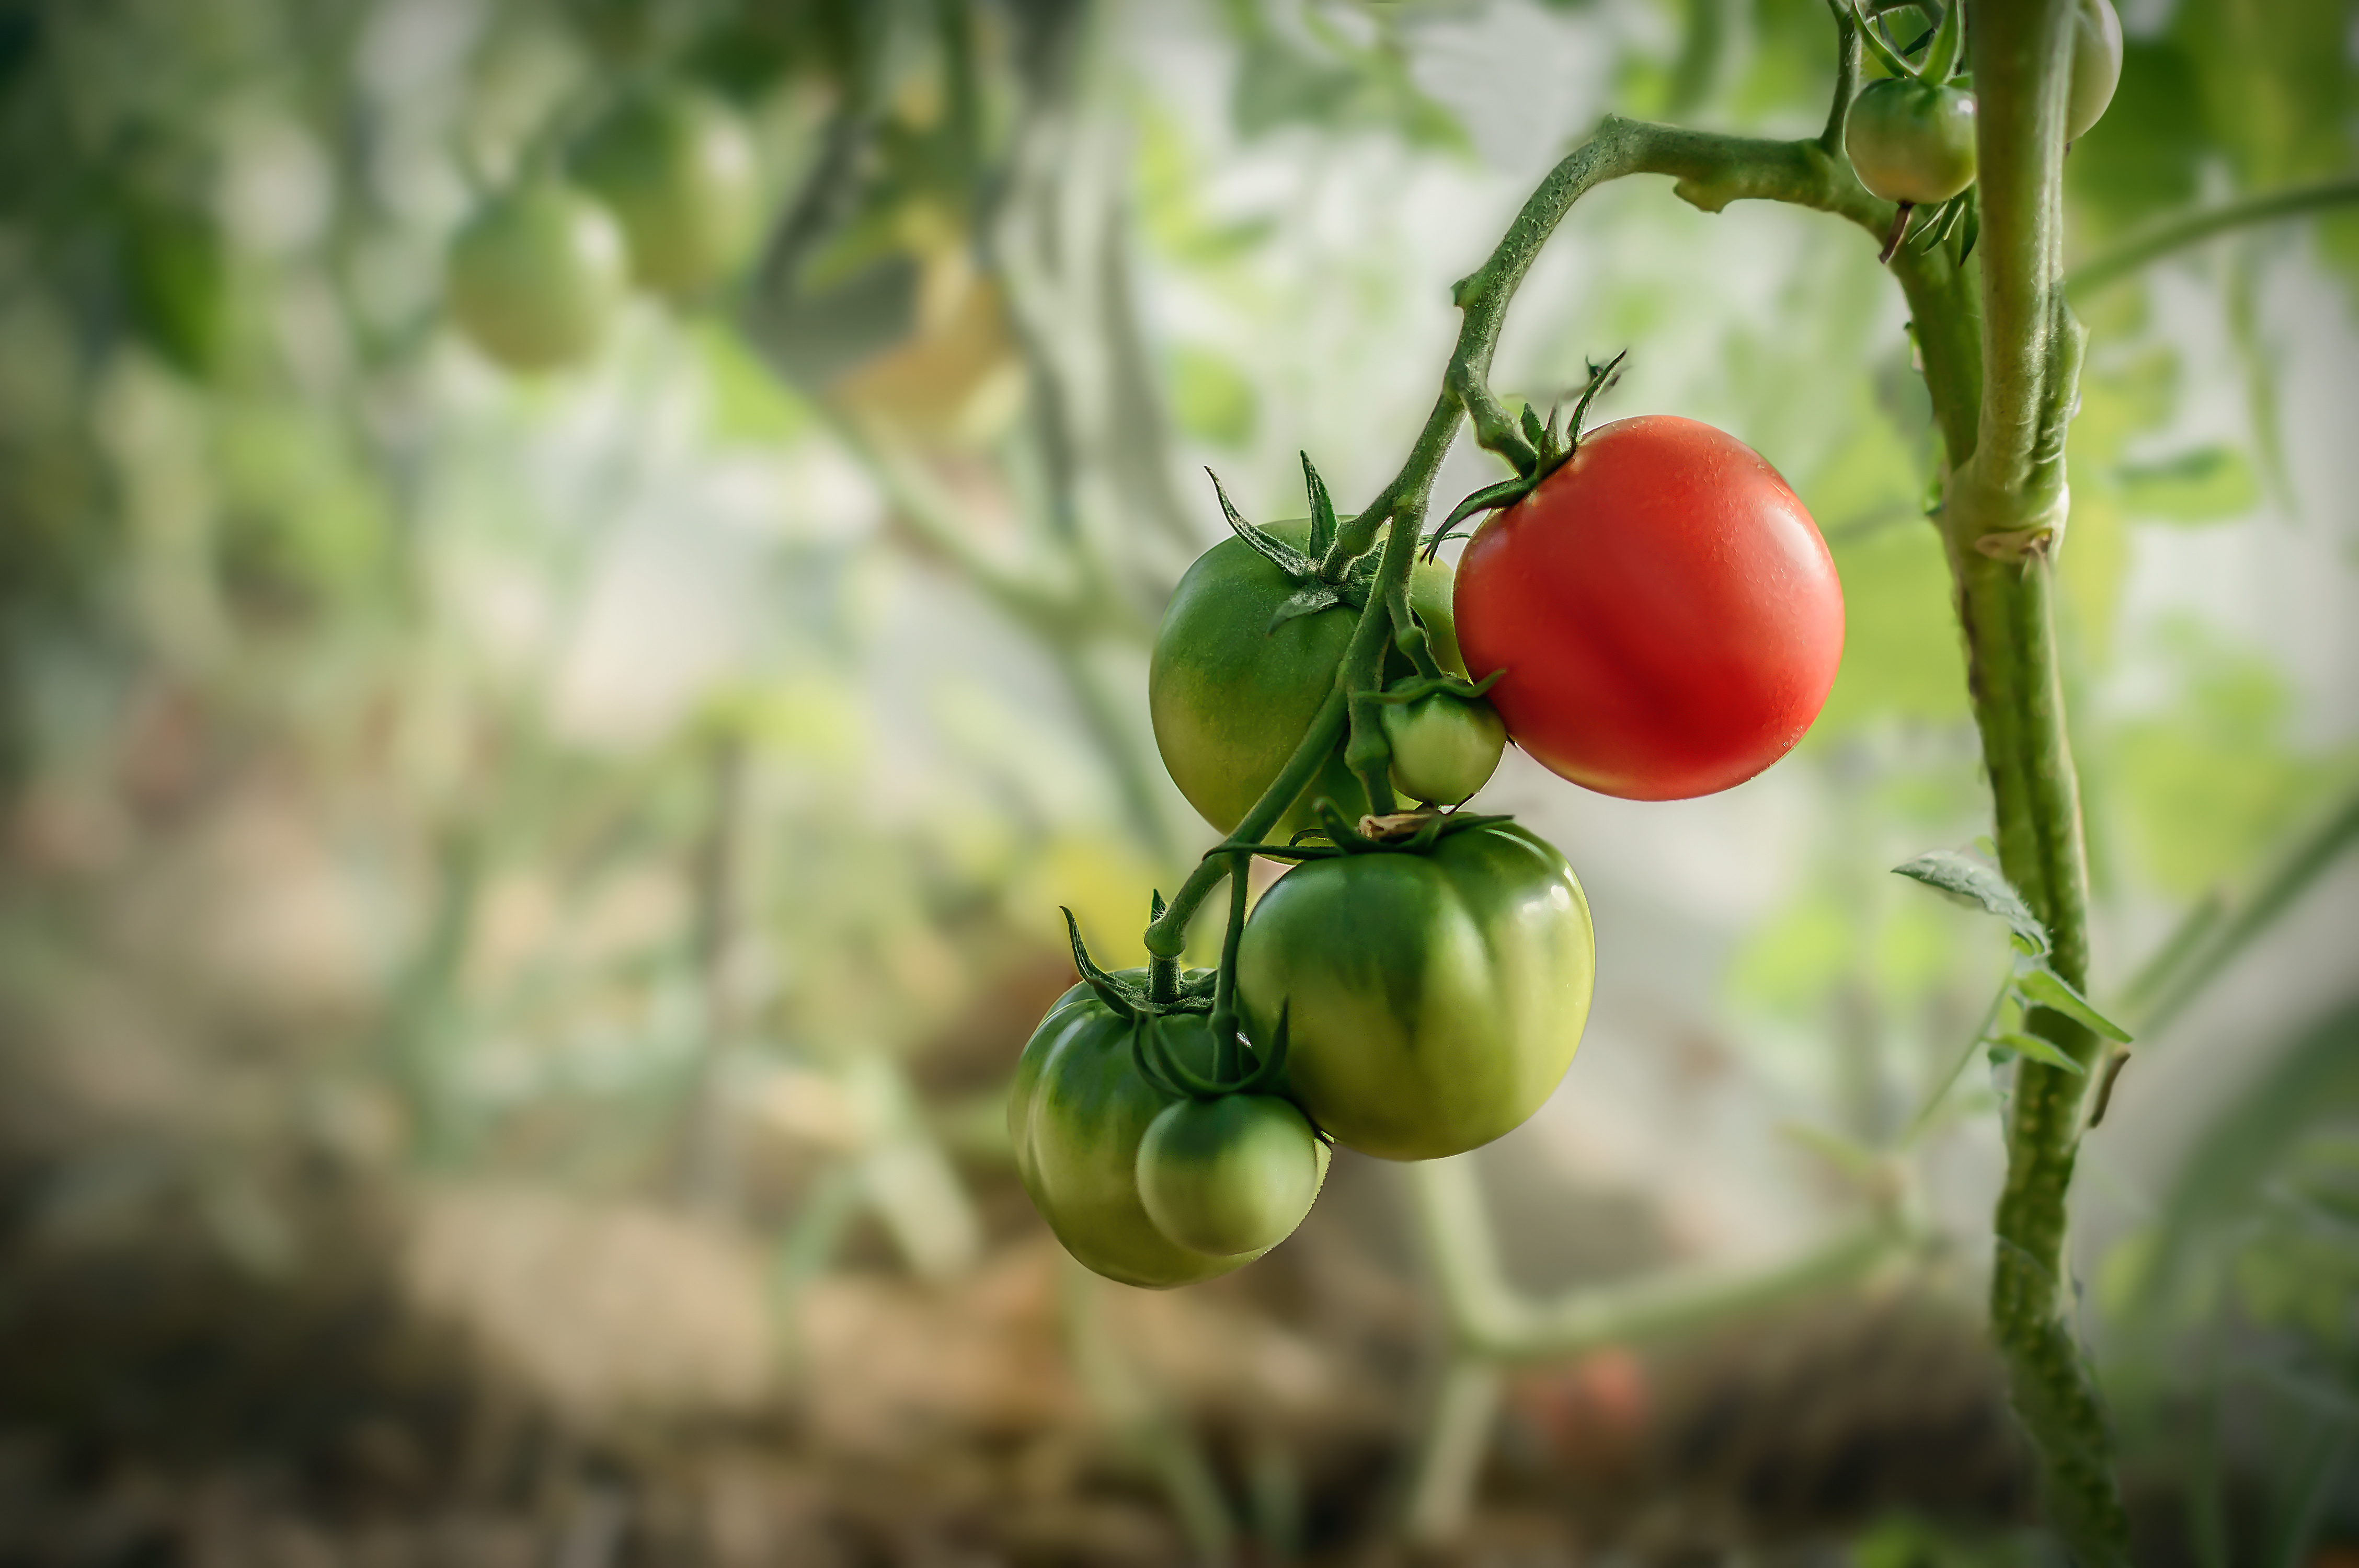 Red and green tomatoes growing in a greenhouse in the sprigs summer